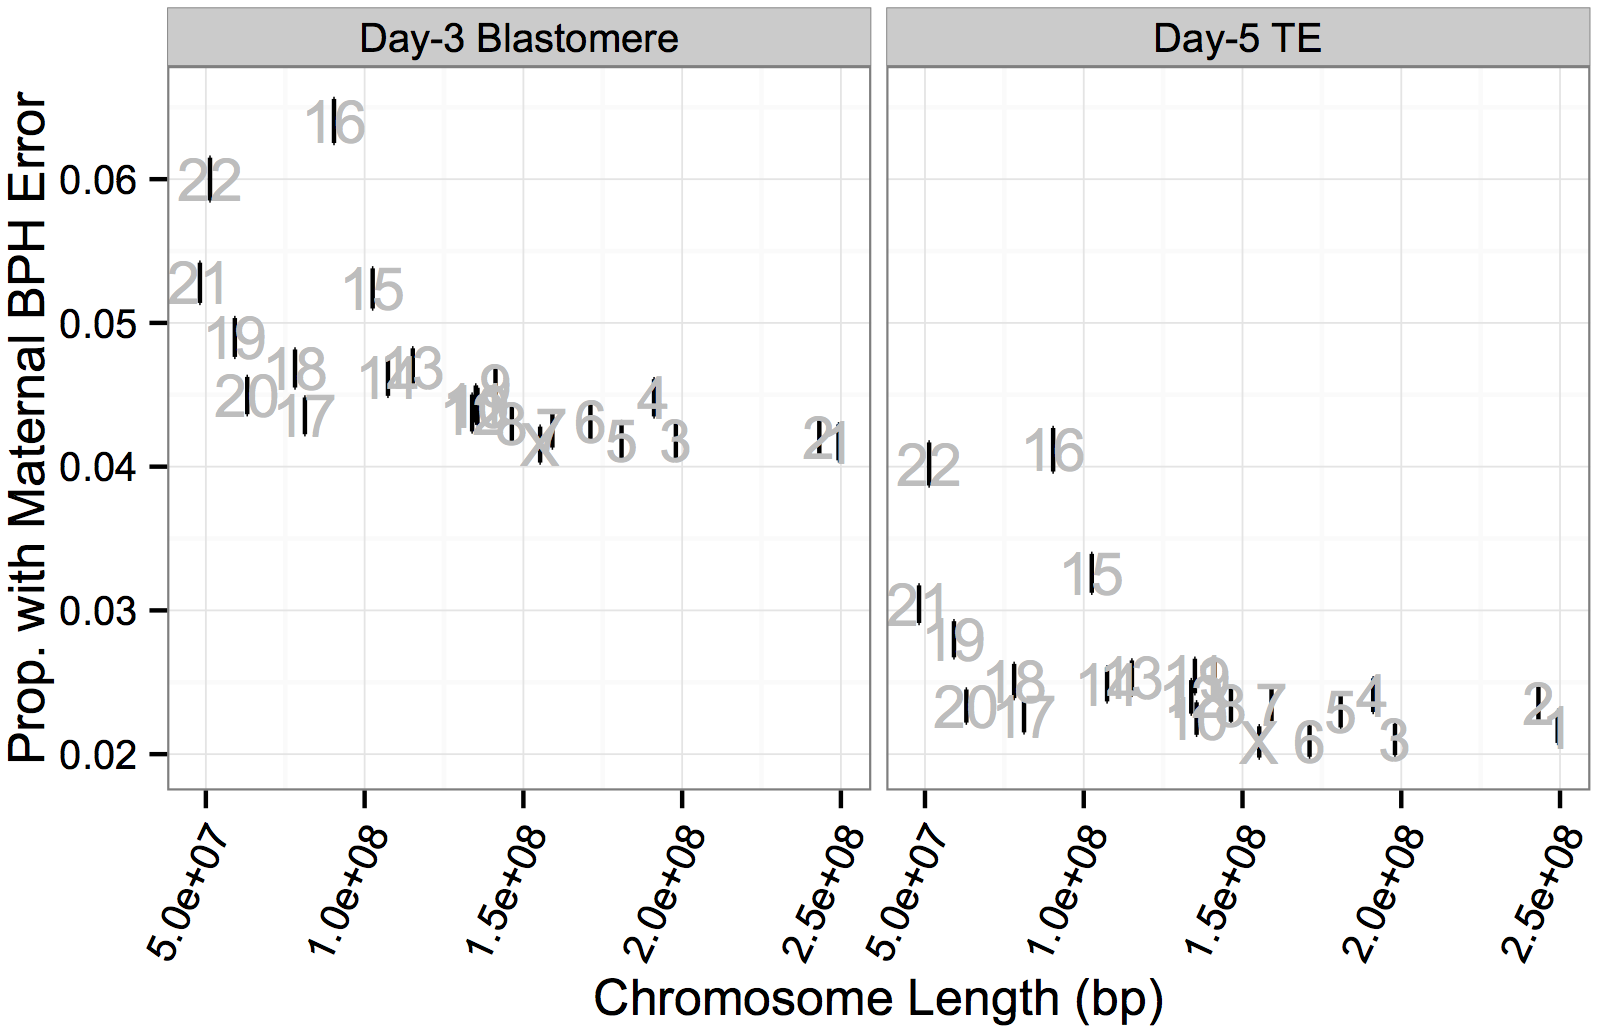 Chromosome-specific rates of maternal BPH aneuploidy are negatively correlated with chromosome length.